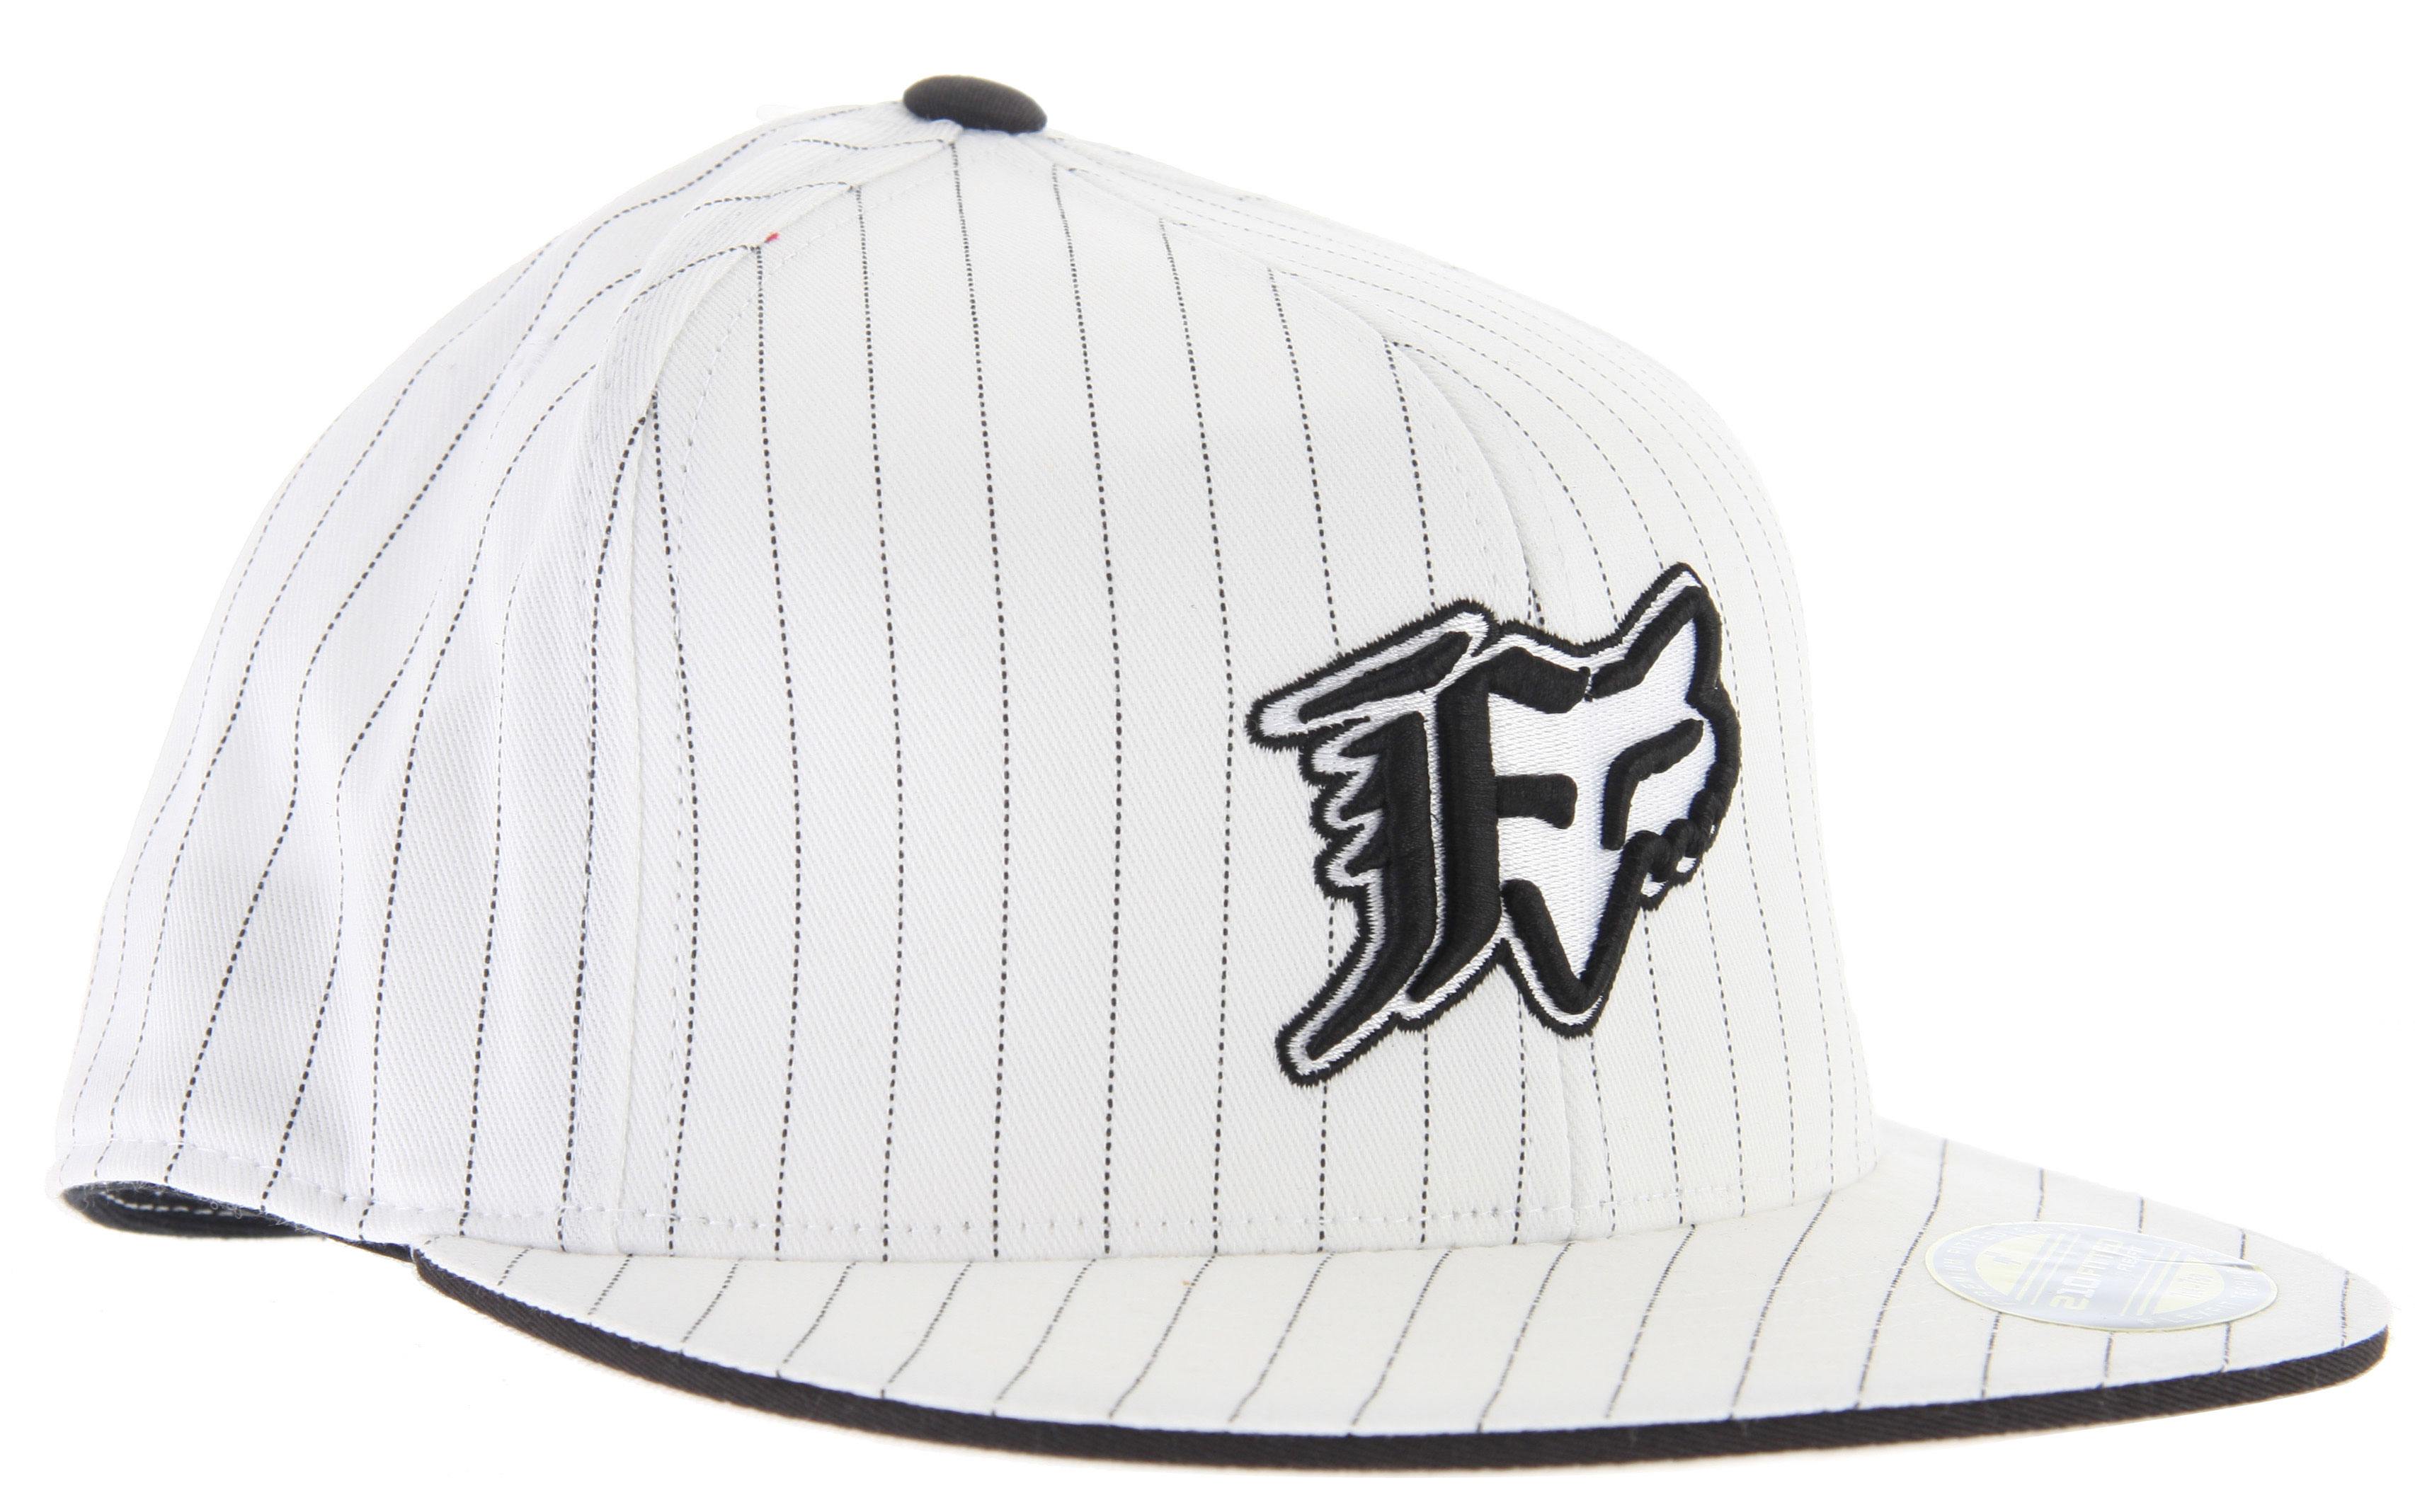 Fitness When it comes to hats, there is many different choices. The best and by far most stylish choice would absolutely have to be the Fox Vip Stripe 210 Hat. Fox Vip has made a very high quality looking hat that has beautiful stripes running down it. As all good hats, this one is fitted and it will look great on your head and won't look awkwardly placed like some of the other hats do. The Fox Vip logo on the side of the hat lets every body know that your wearing genuine hat and not some cheap material. Since this hat is black and white, it will match with almost all of your clothes in your wardrobe which will make any time, the perfect time to wear the Fox Vip Stripe 210 Hat!Key Features of the Fox Vip Stripe 210 Hat: Premium 210 Fitted Cap has a fitted look and feel with flexfit band and sizing. All-over pinstripe print. Embroidered Fox head in center. Small logo on back side. Pro bill with no curve 87% acrylic, 11% wool, 2% spandex - $17.95